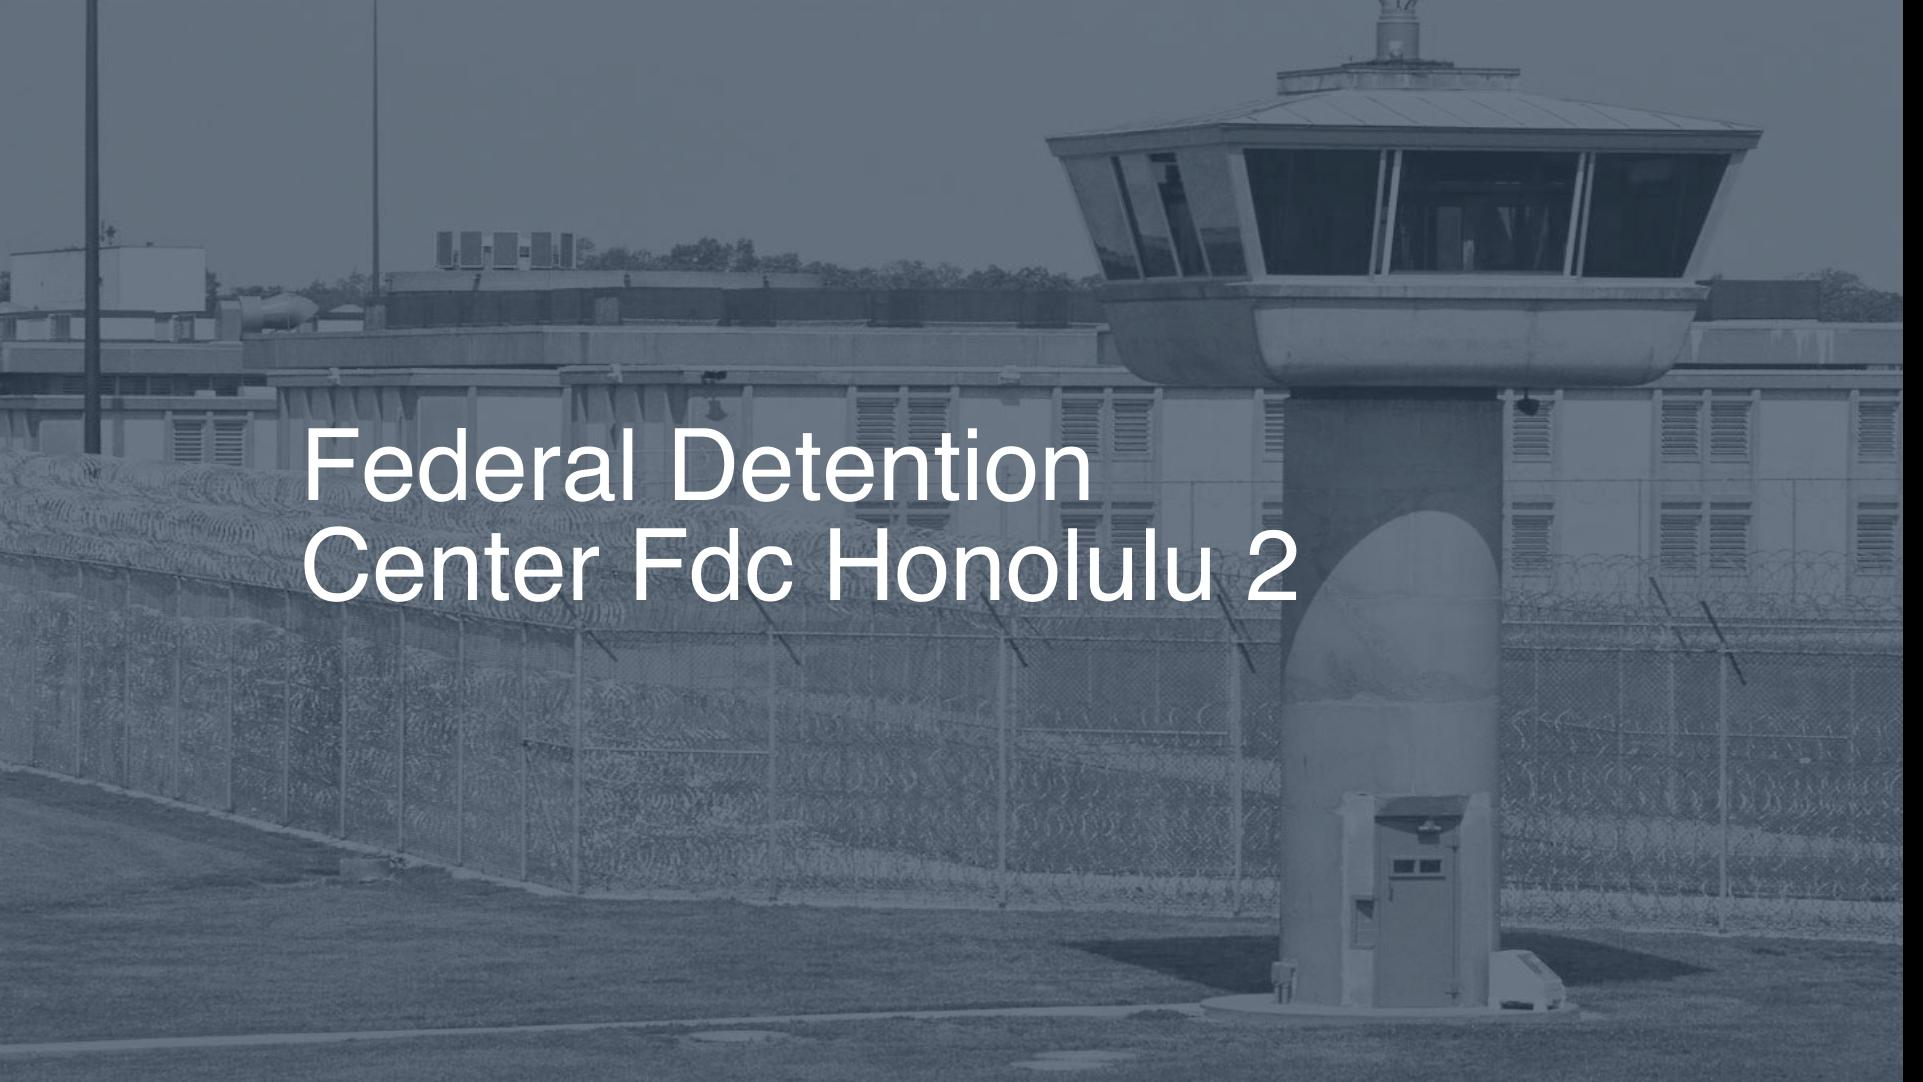 Federal Detention Center (FDC) - Honolulu correctional facility picture